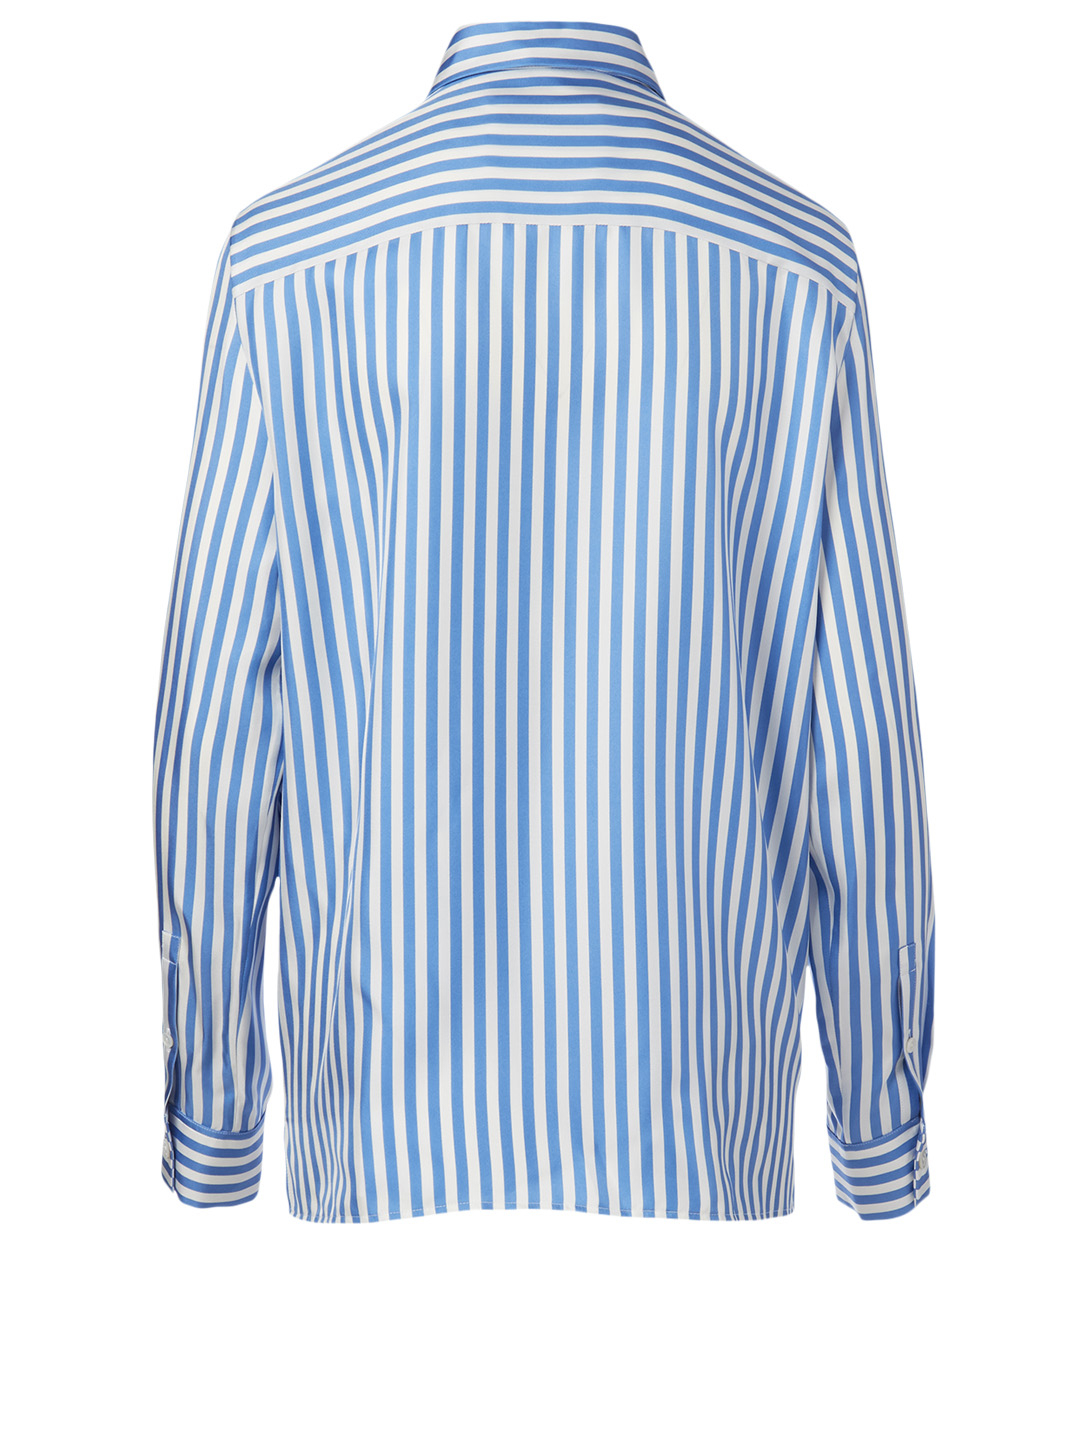 JIL SANDER Silk Shirt In Striped Print Women's Blue